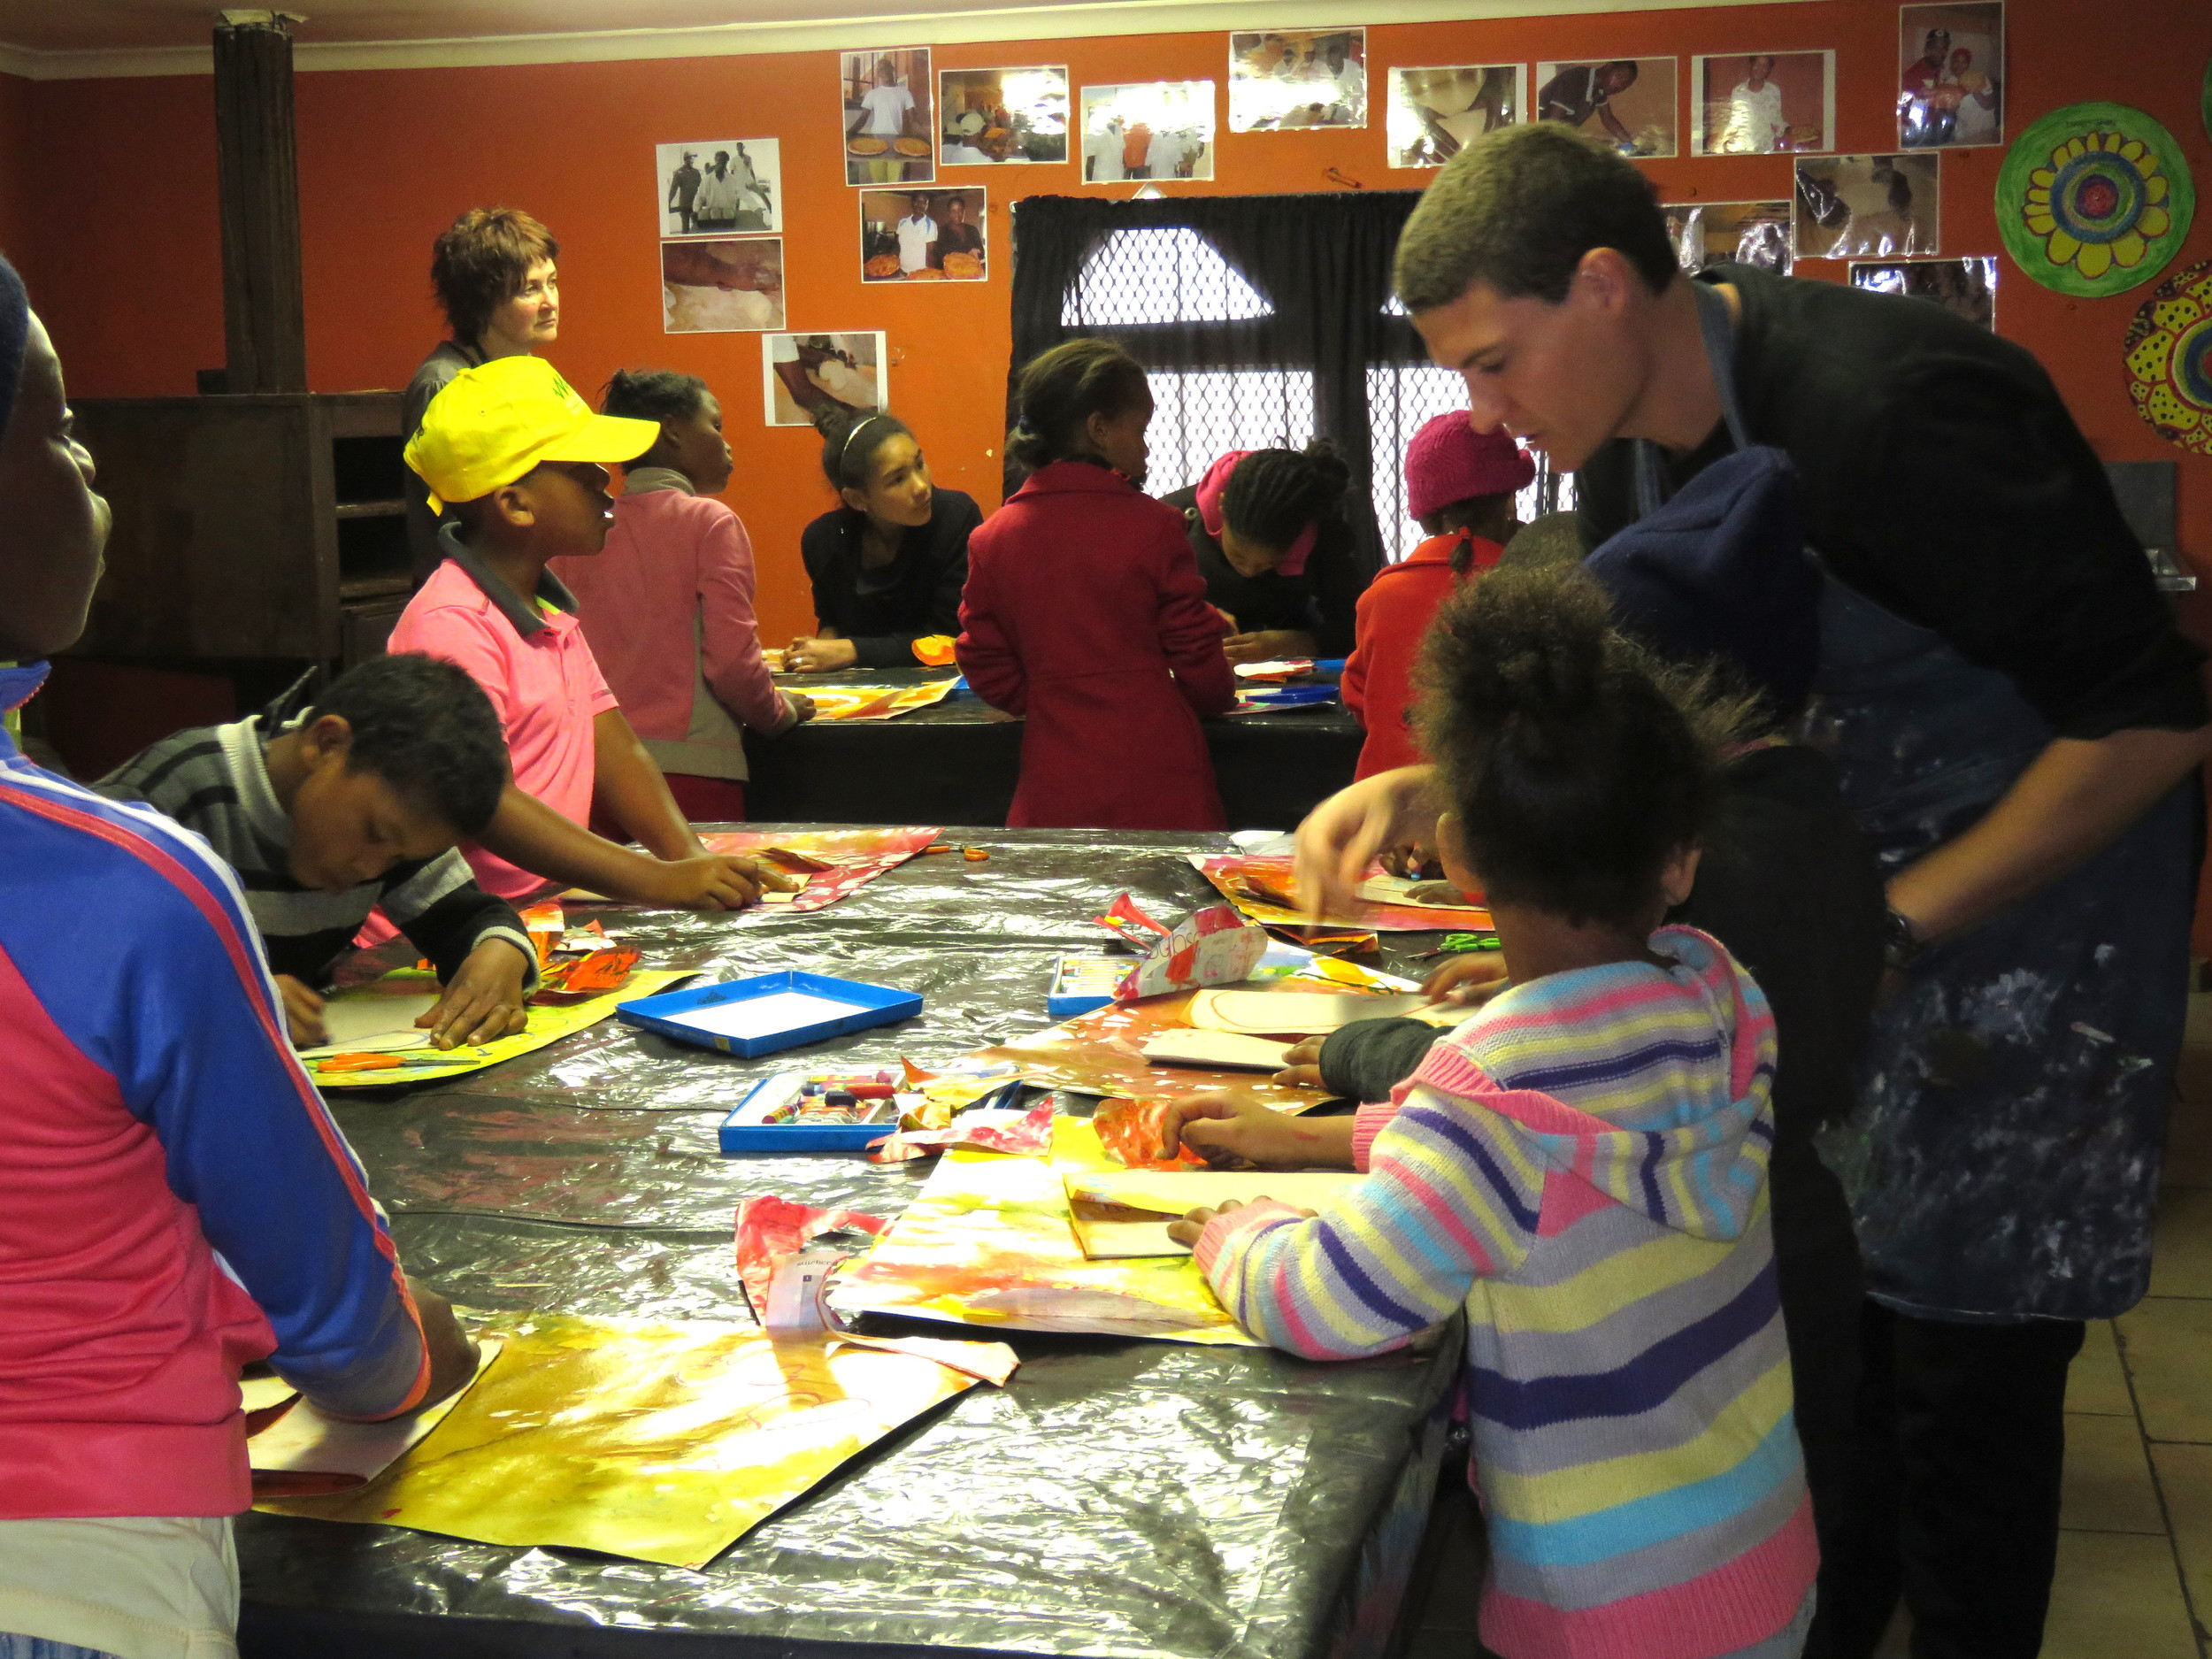 UNISA , ARH and TAC children's art partnership project in Delft